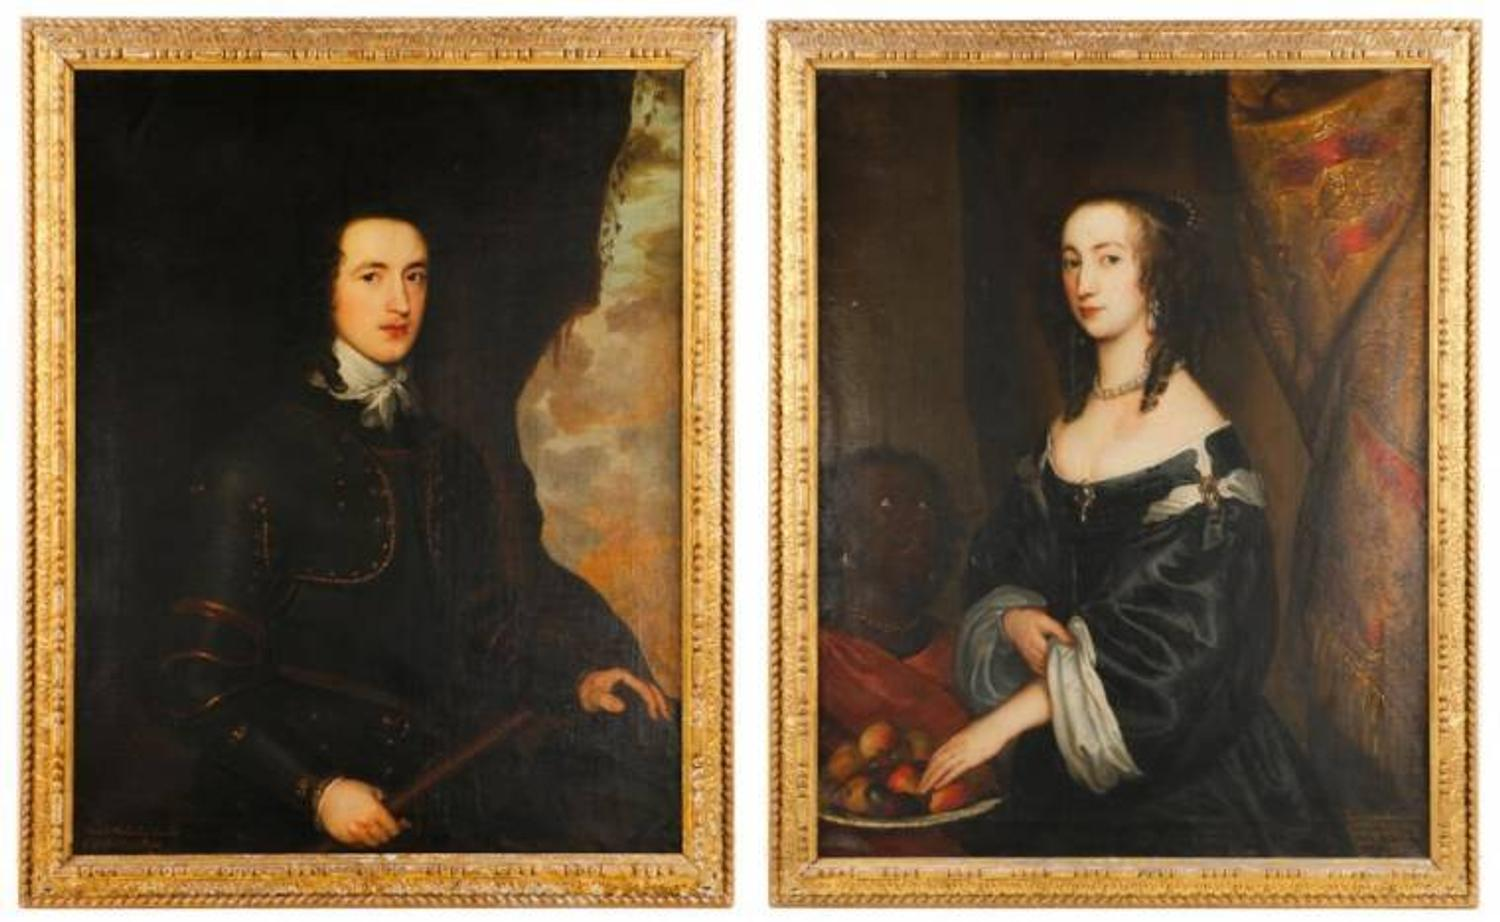 Pair Of 17th Century Portraits Of English Nobility By John